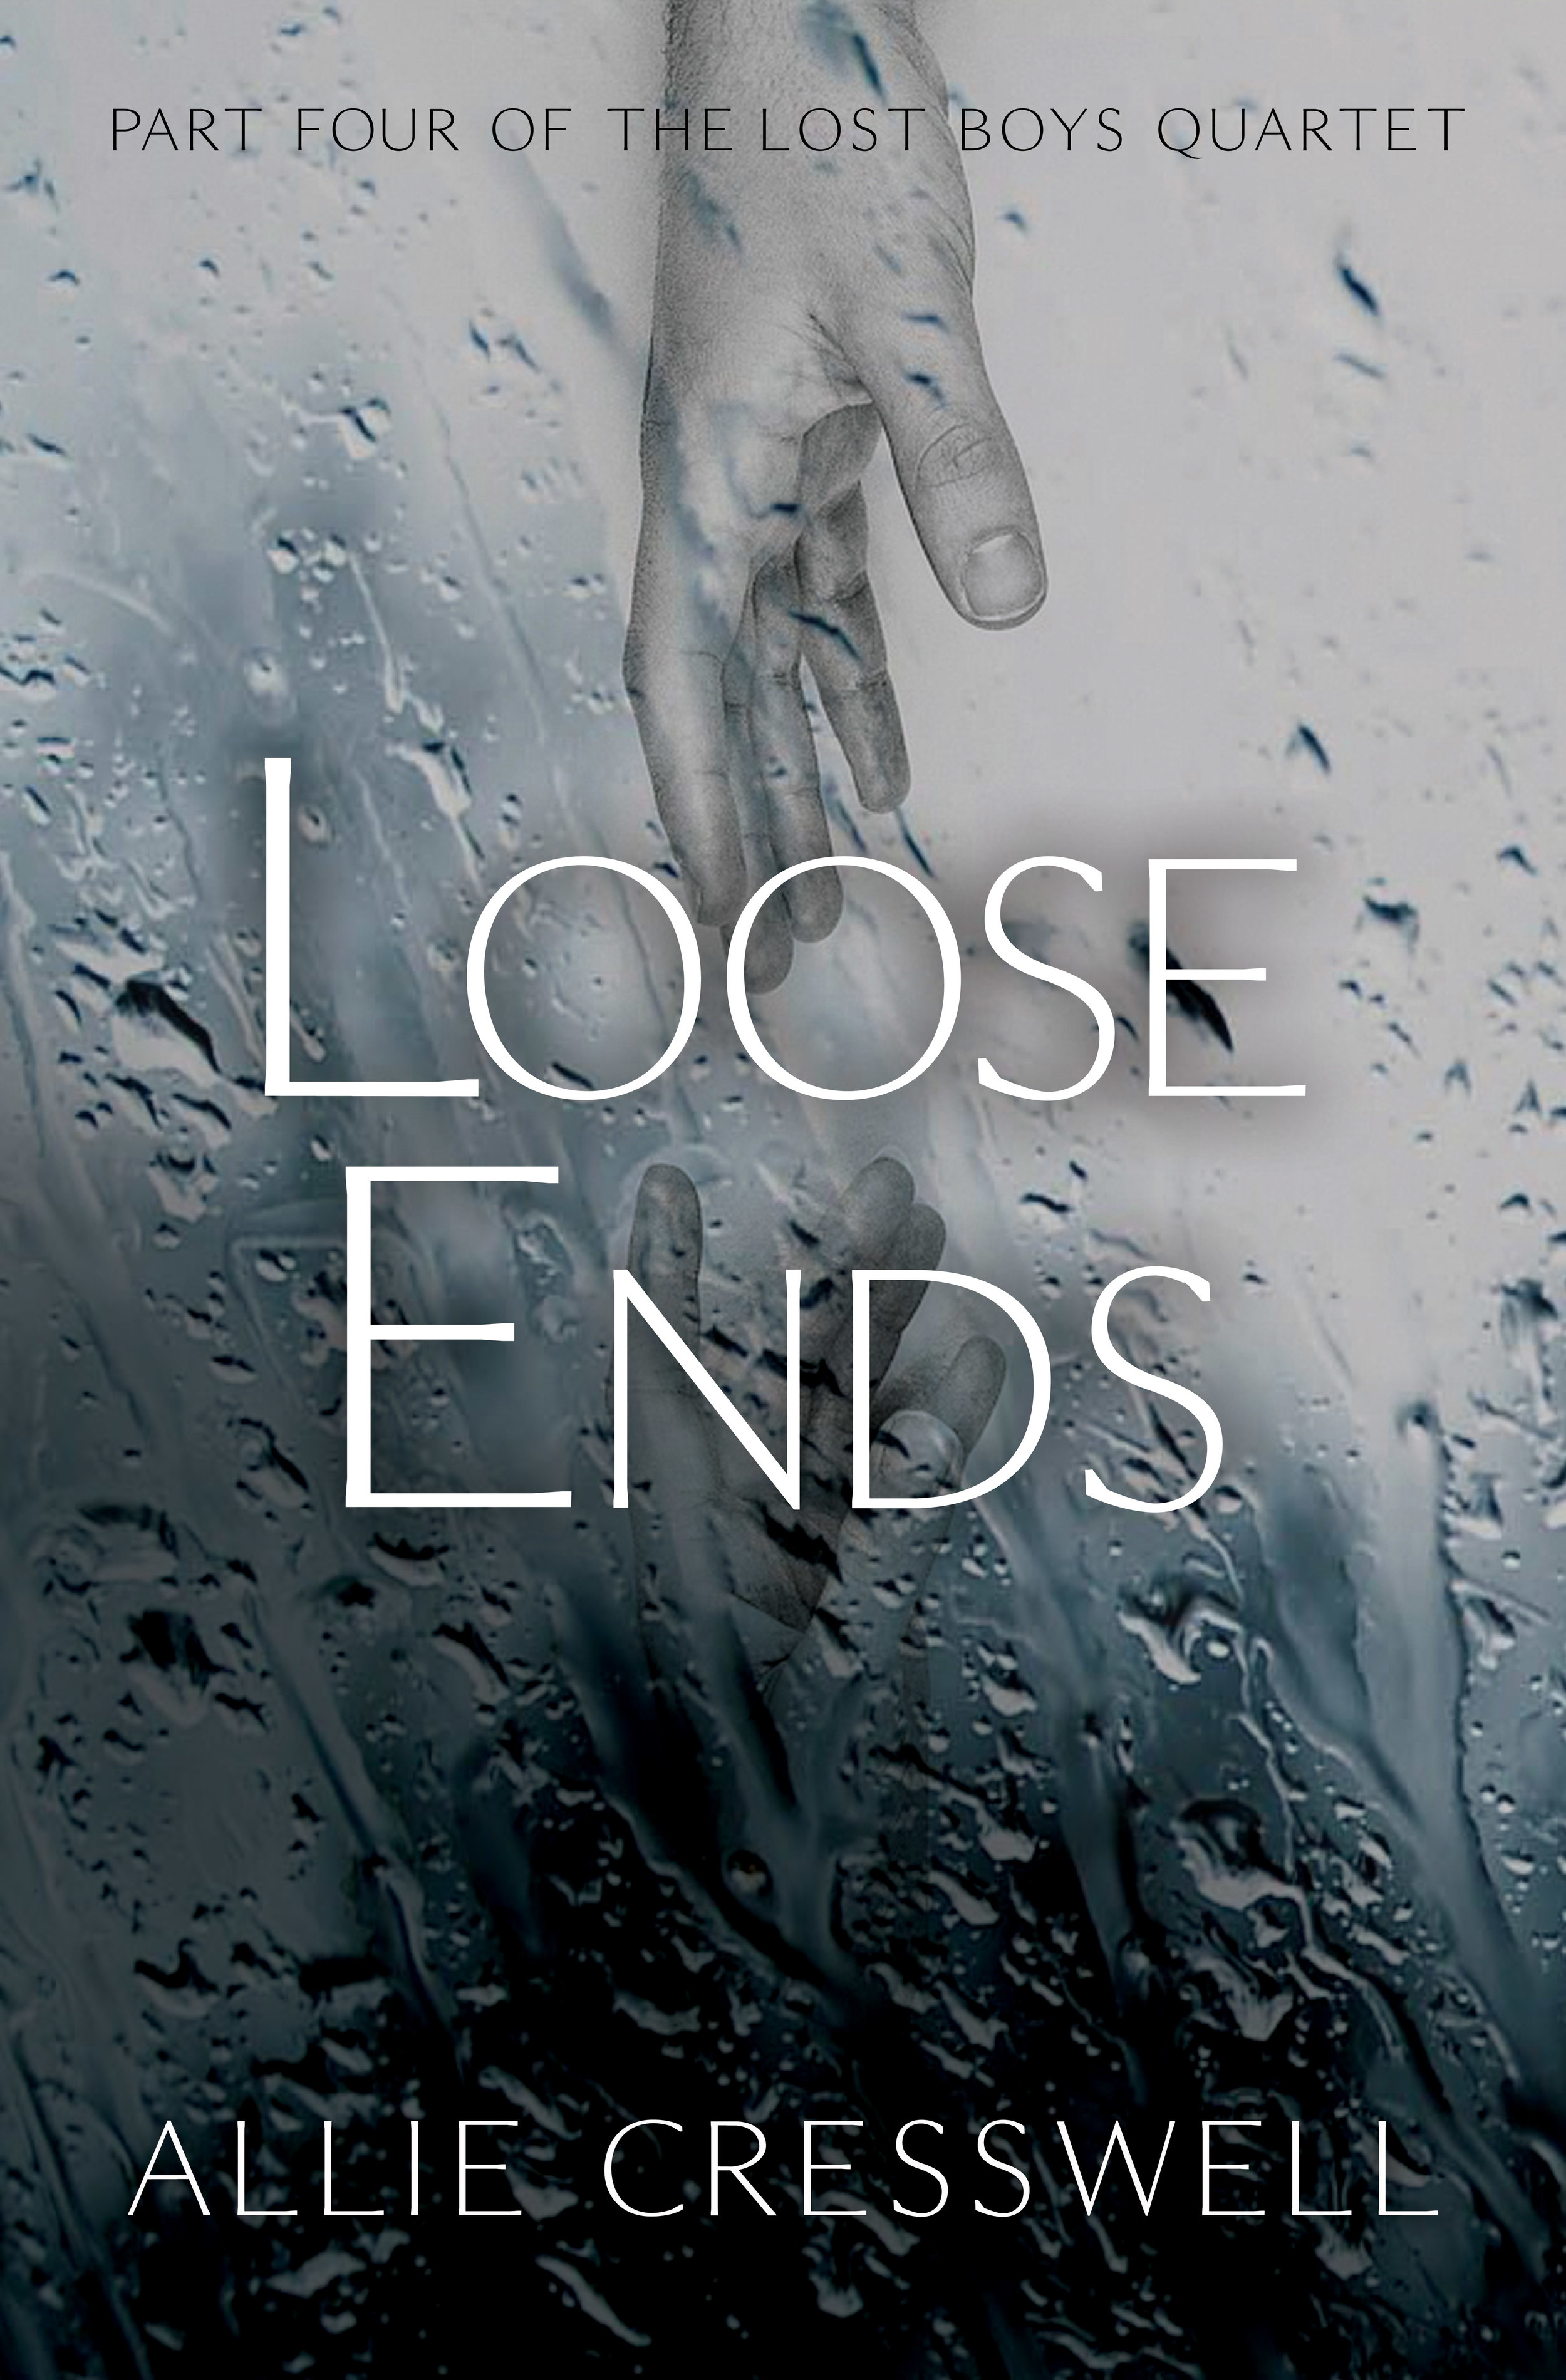 Loose Ends by Allie Cresswell